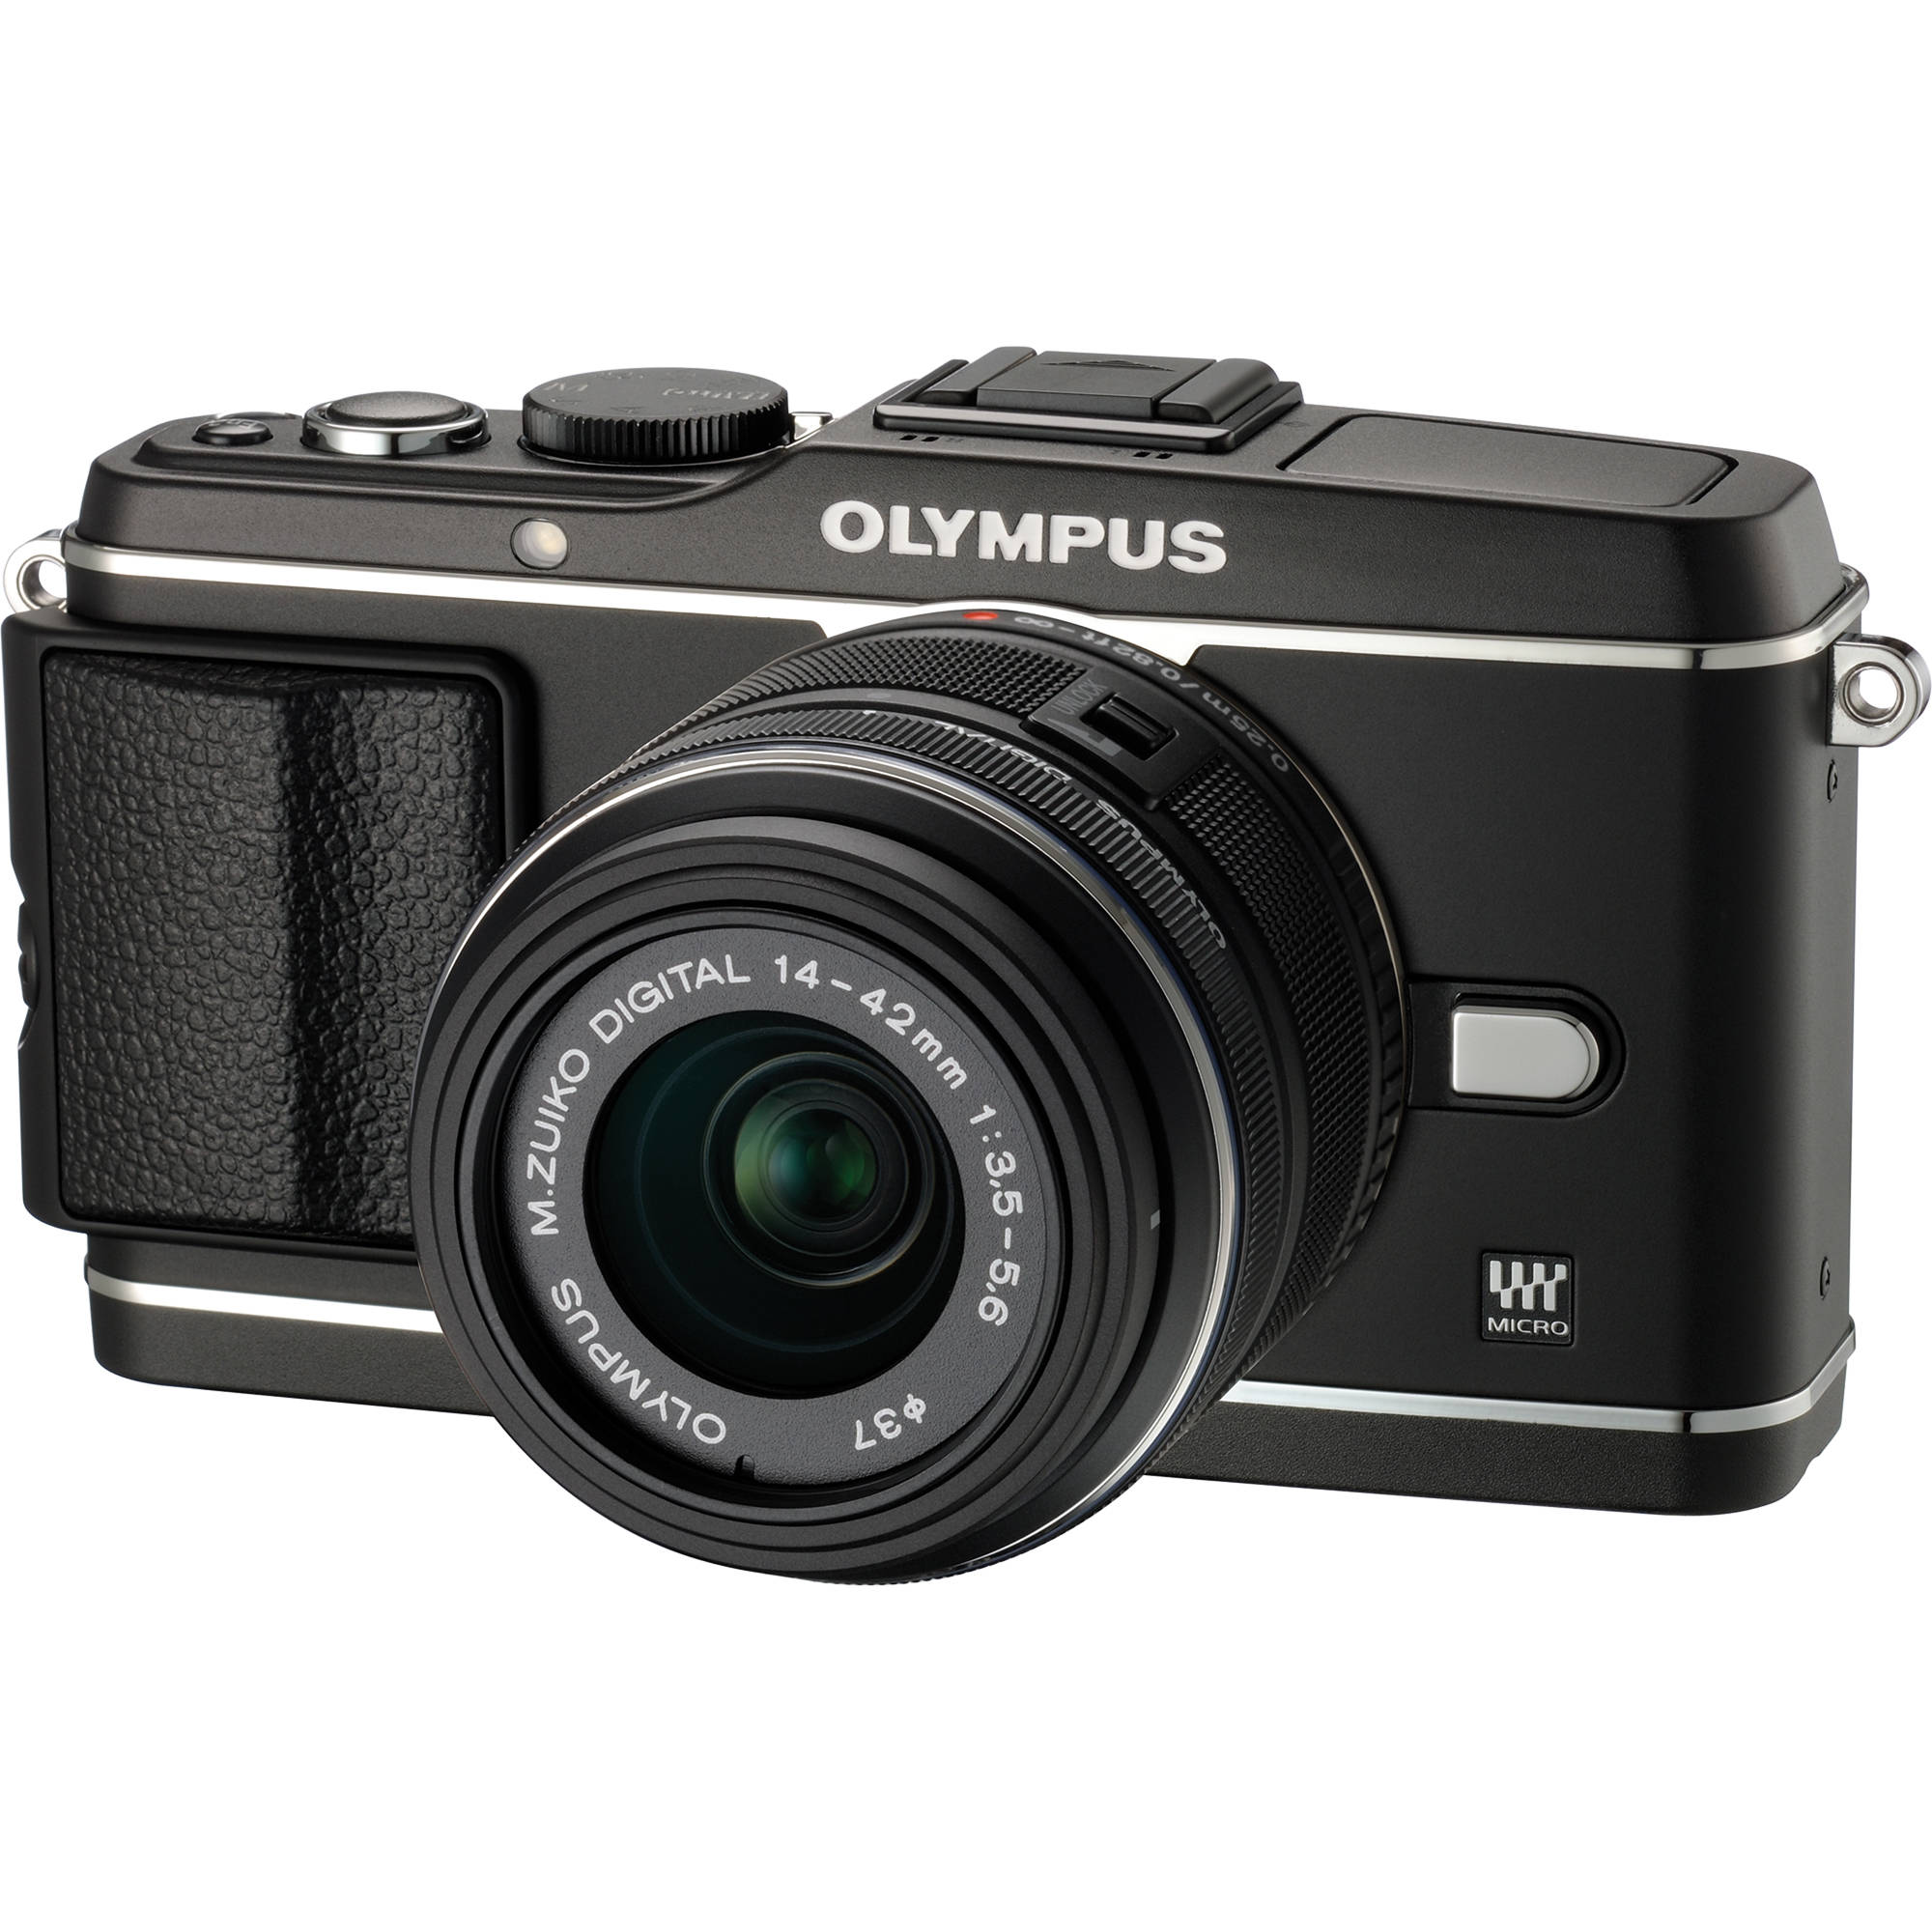 olympus e p3 pen digital camera with 14 42mm lens v204031bu000 rh bhphotovideo com Olympus PEN Camera Olympus PEN E-Pl7